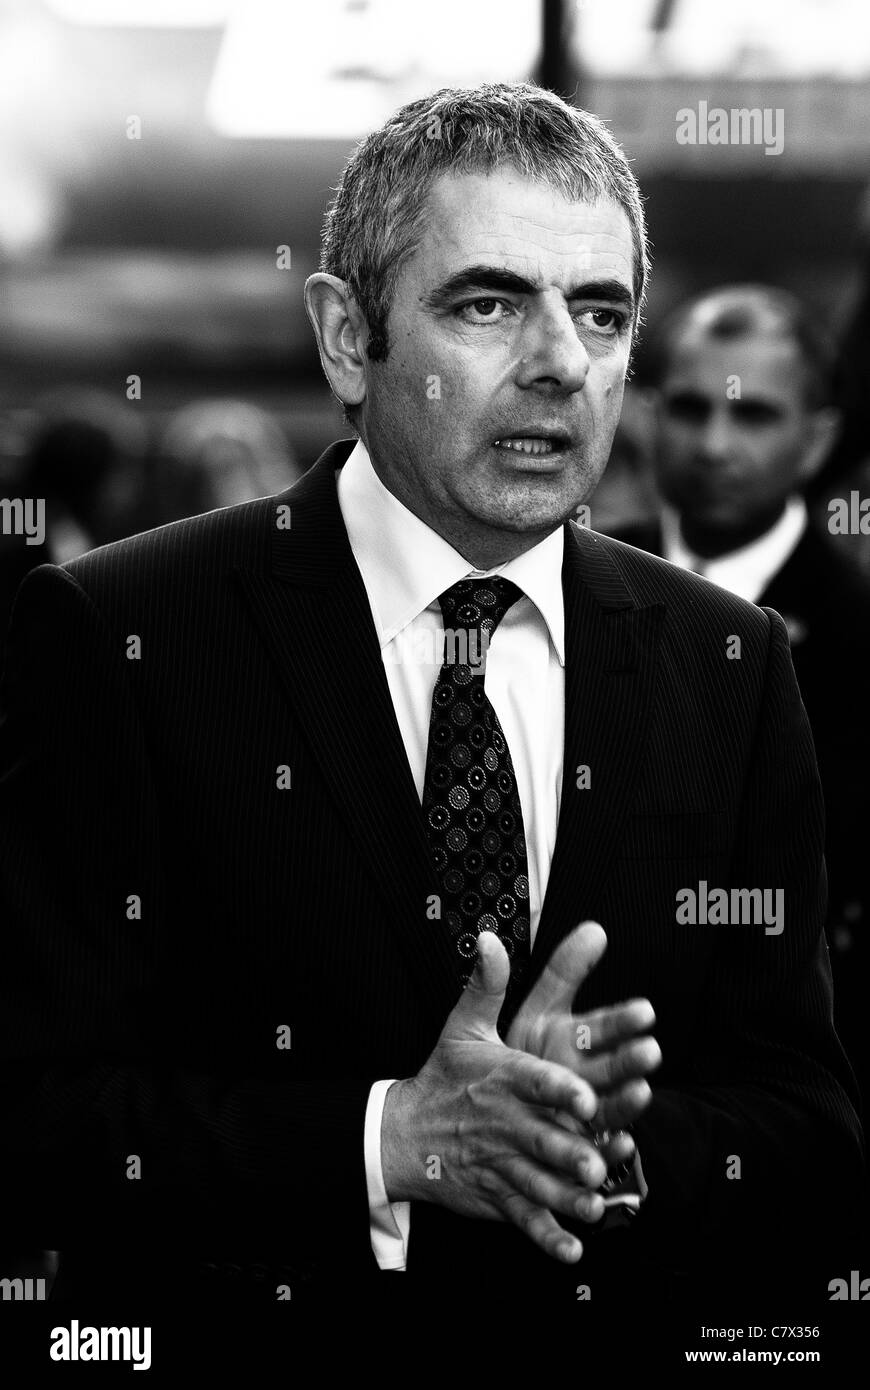 Rowan Atkinson  attends the UK Premiere of Johnny English Reborn at The Empire, Leicester Square, London on 2nd - Stock Image